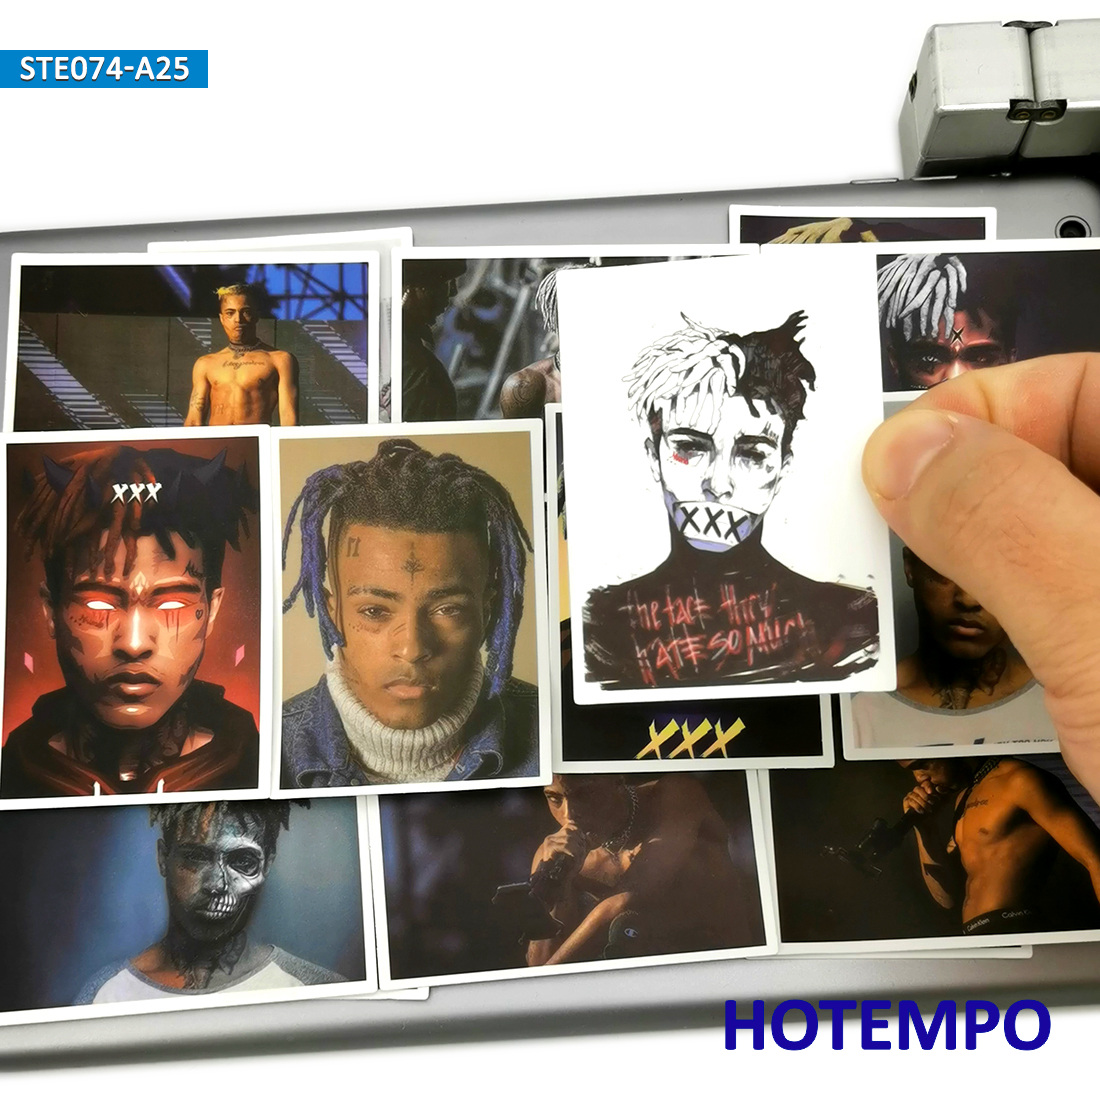 25pcs American Rapper Xxxtentacion Poster Sticker For DIY Mobile Phone Laptop Luggage Suitcase Guitar Skateboard Decal Stickers